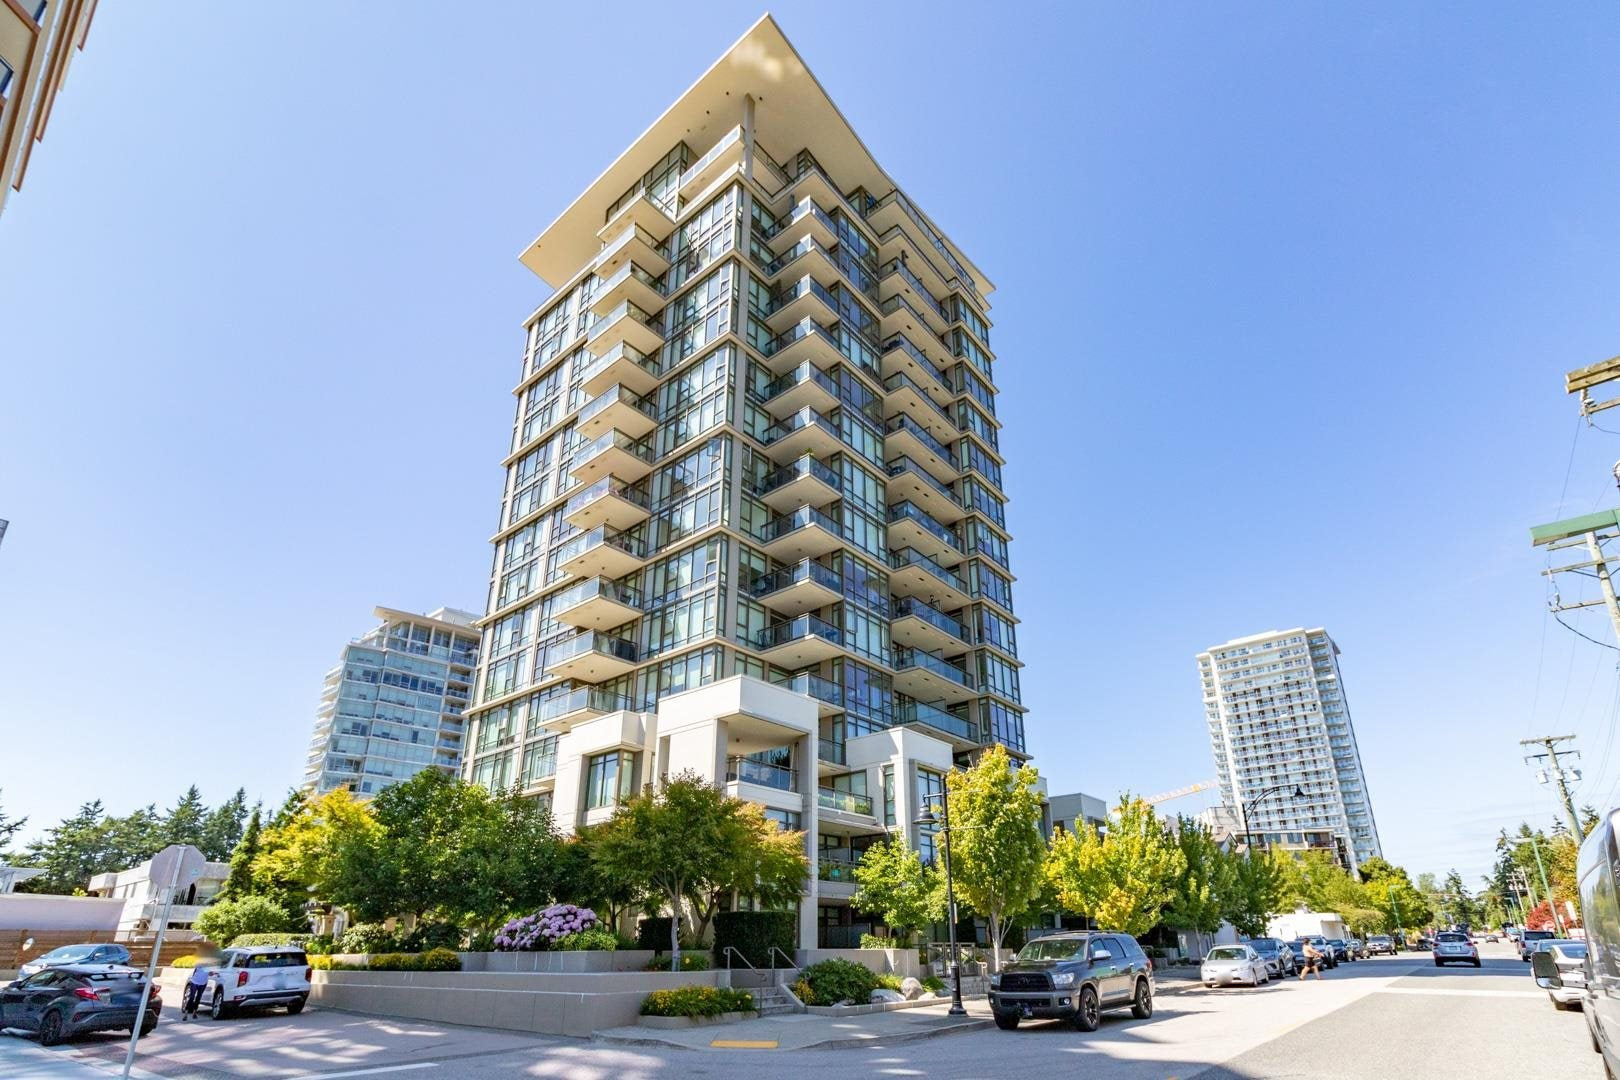 1706 1455 GEORGE STREET - White Rock Apartment/Condo for sale, 2 Bedrooms (R2602167) - #1